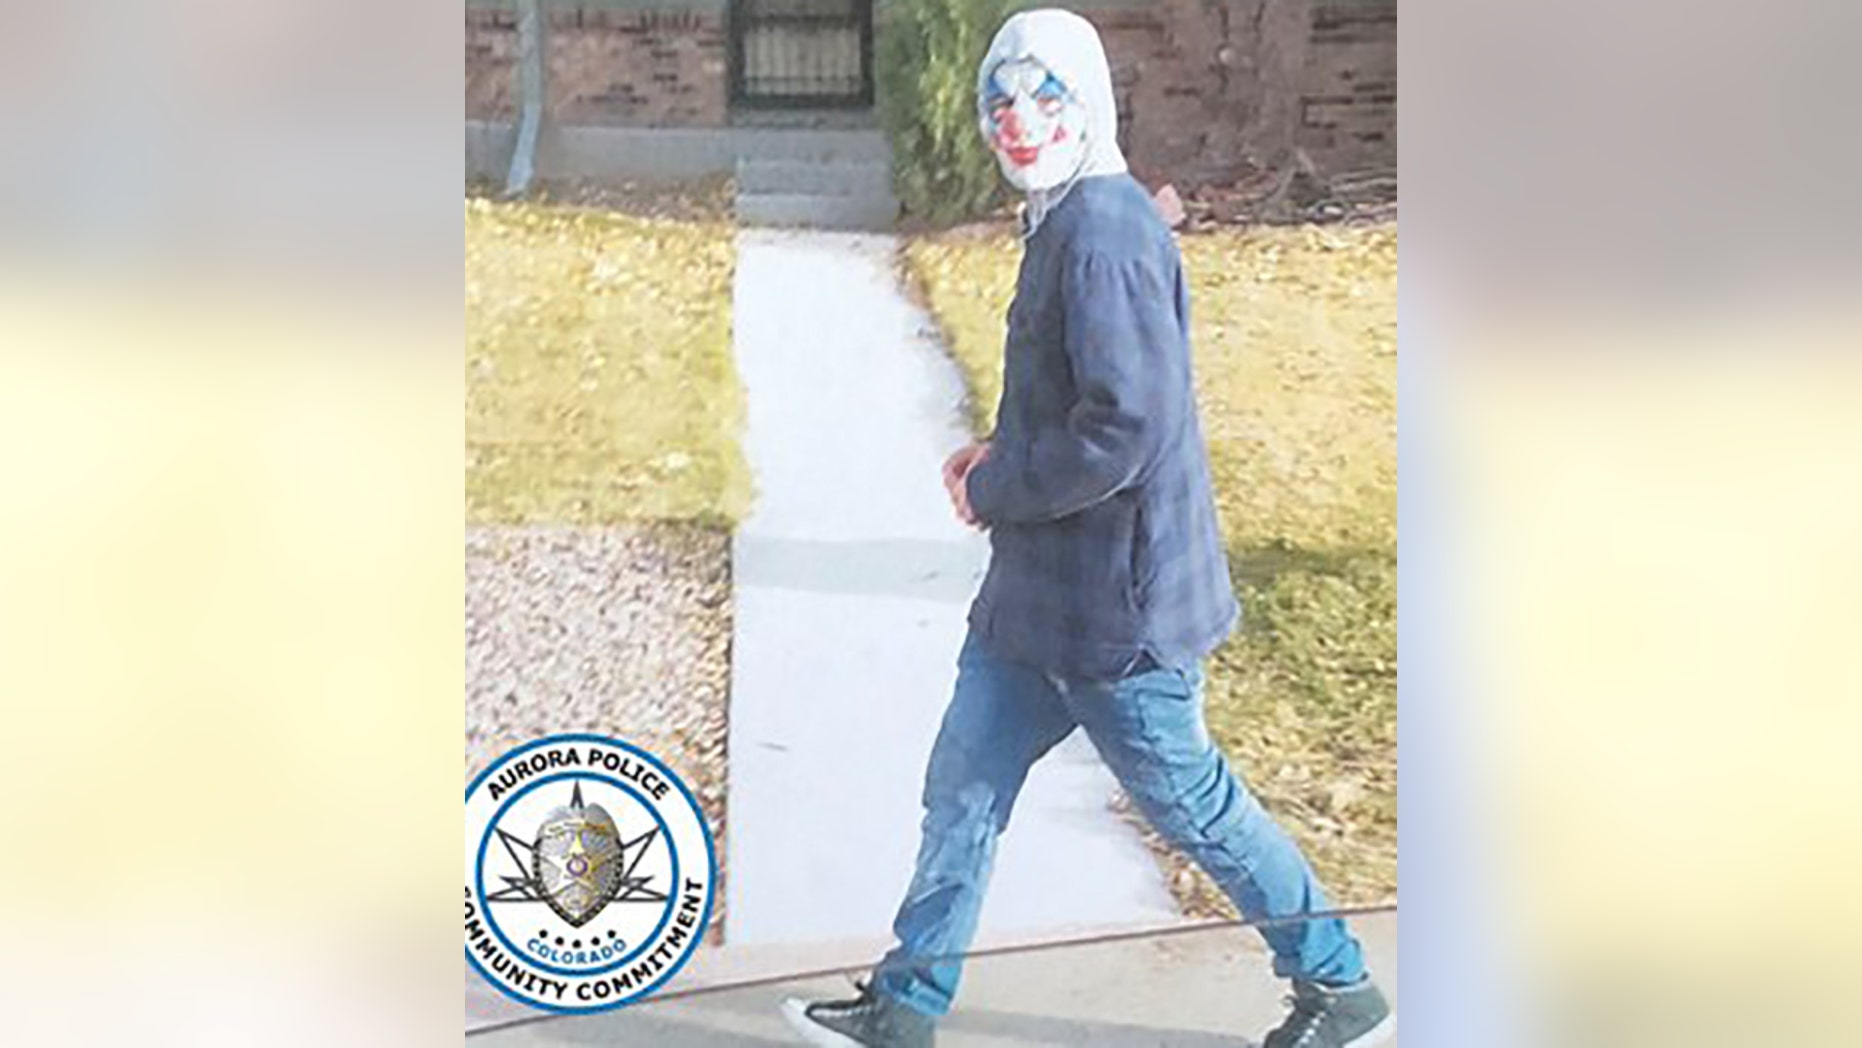 A unidentified juvenile in a clown mask was scaring students from a Colorado middle school as they walked home from school this week. He later was caught by the school's principal but wasn't charged, authorities say.